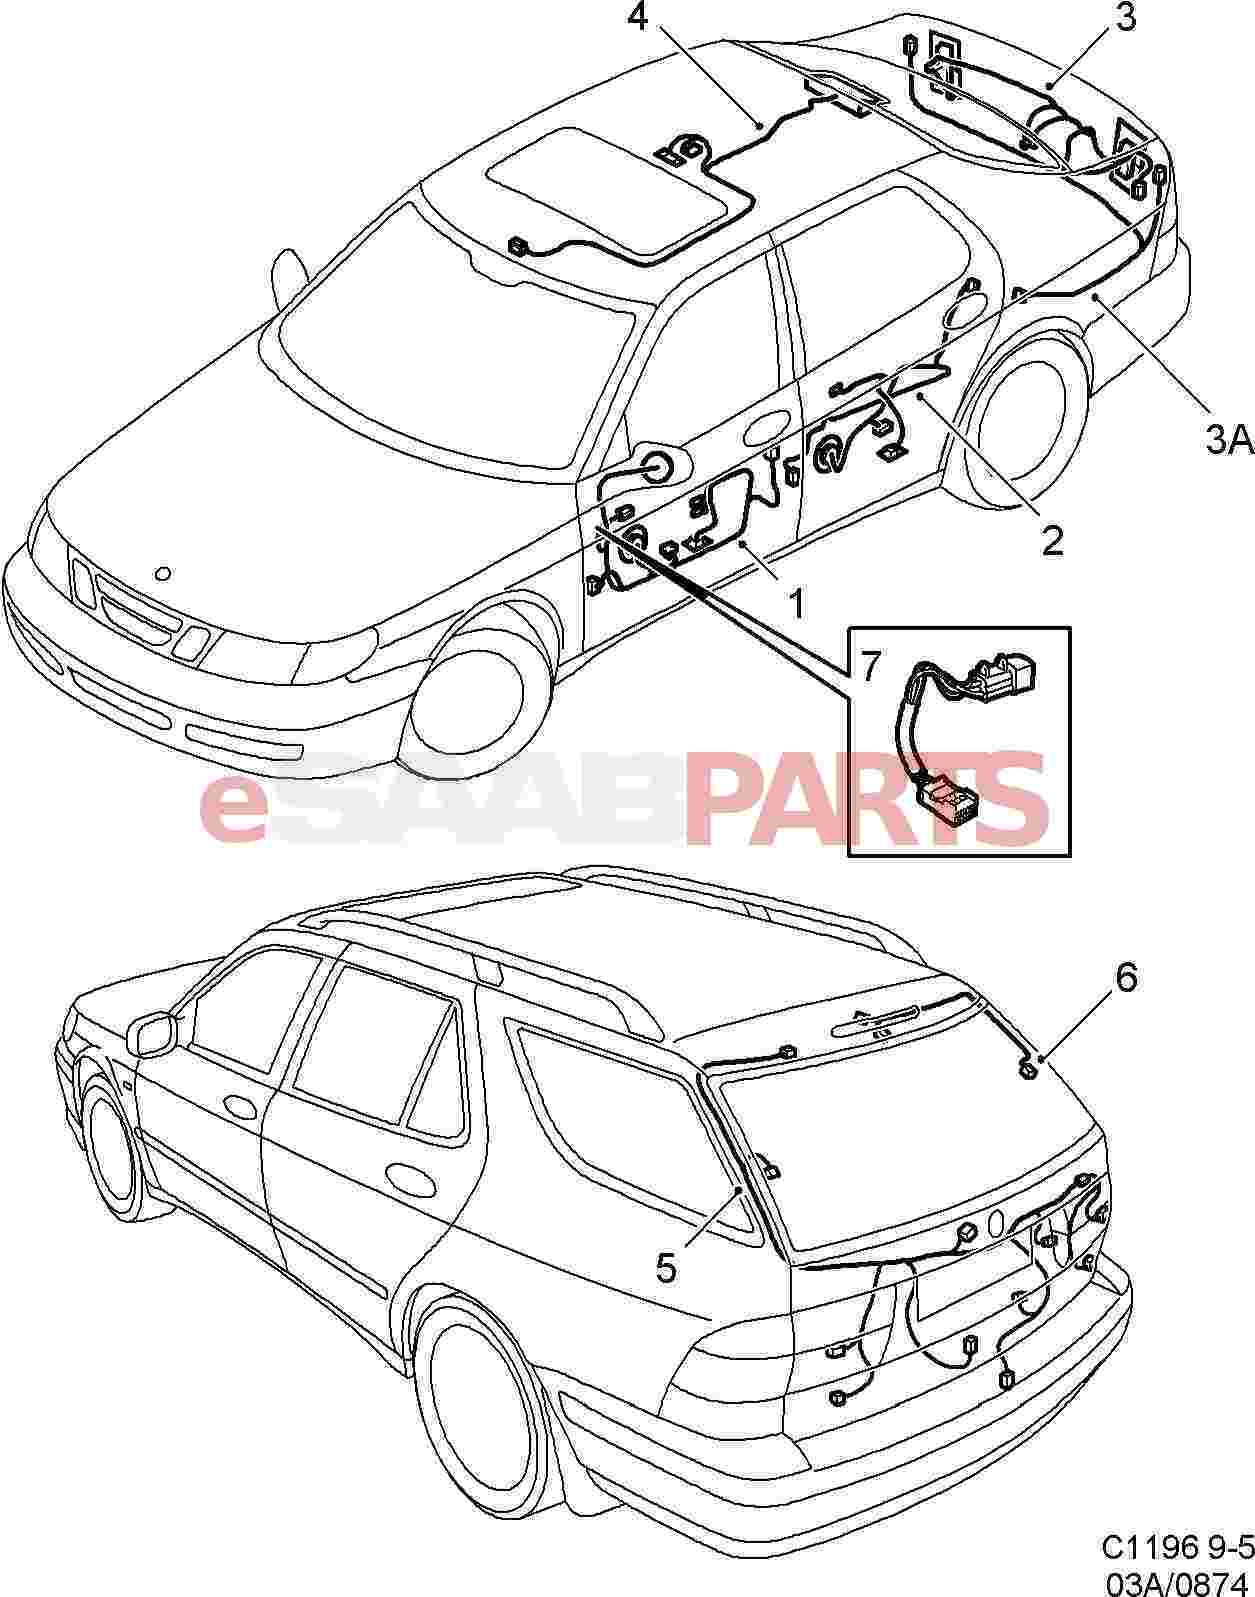 Saab 9 5 9600 Electrical Parts Wiring Harness Car Light Diagram For Door Doors Roof And Rear Hatch